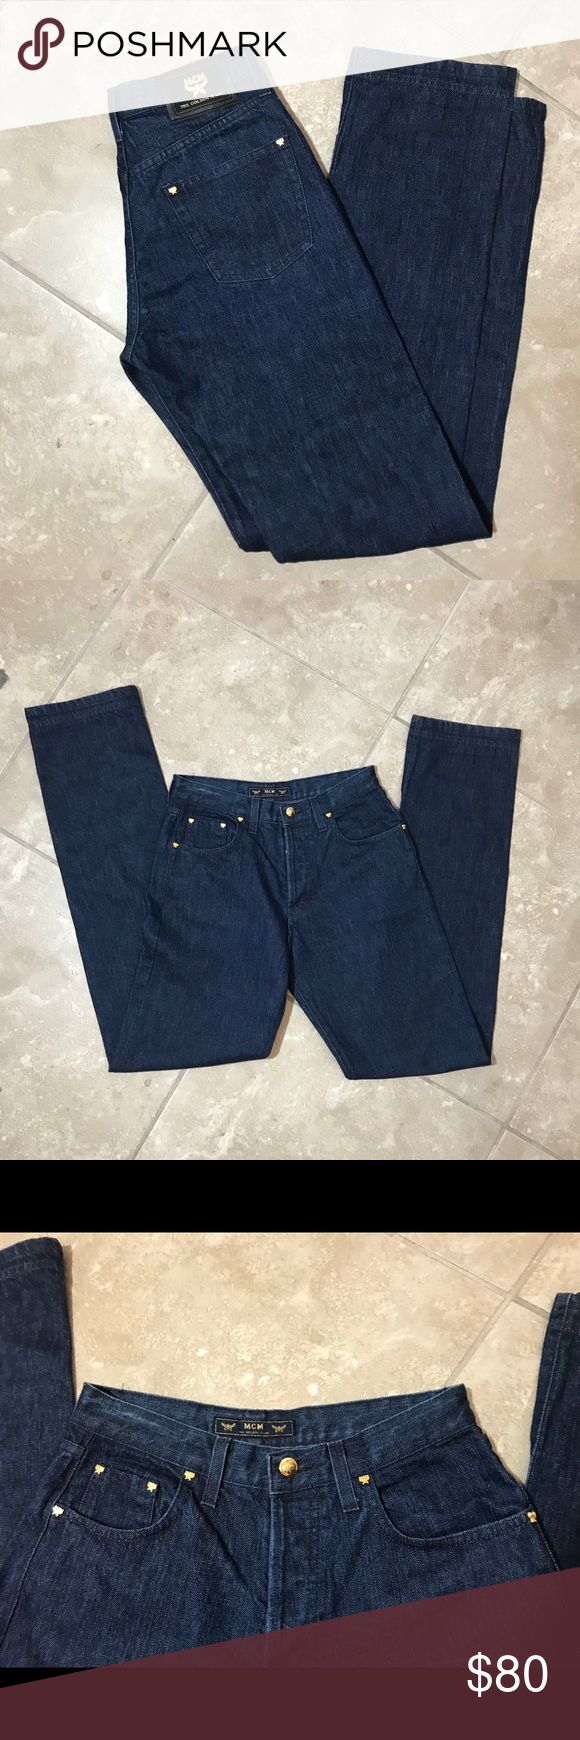 """Rare High Waisted MCM Jeans Rare find! Made in Italy Truly one of a kind and an amazing wash. High quality denim from the MCM brand!! Tag bot attached, here are measurements: Waist 14"""" Hip 19"""" Inseam 34"""" 100% Cotton MCM Jeans"""